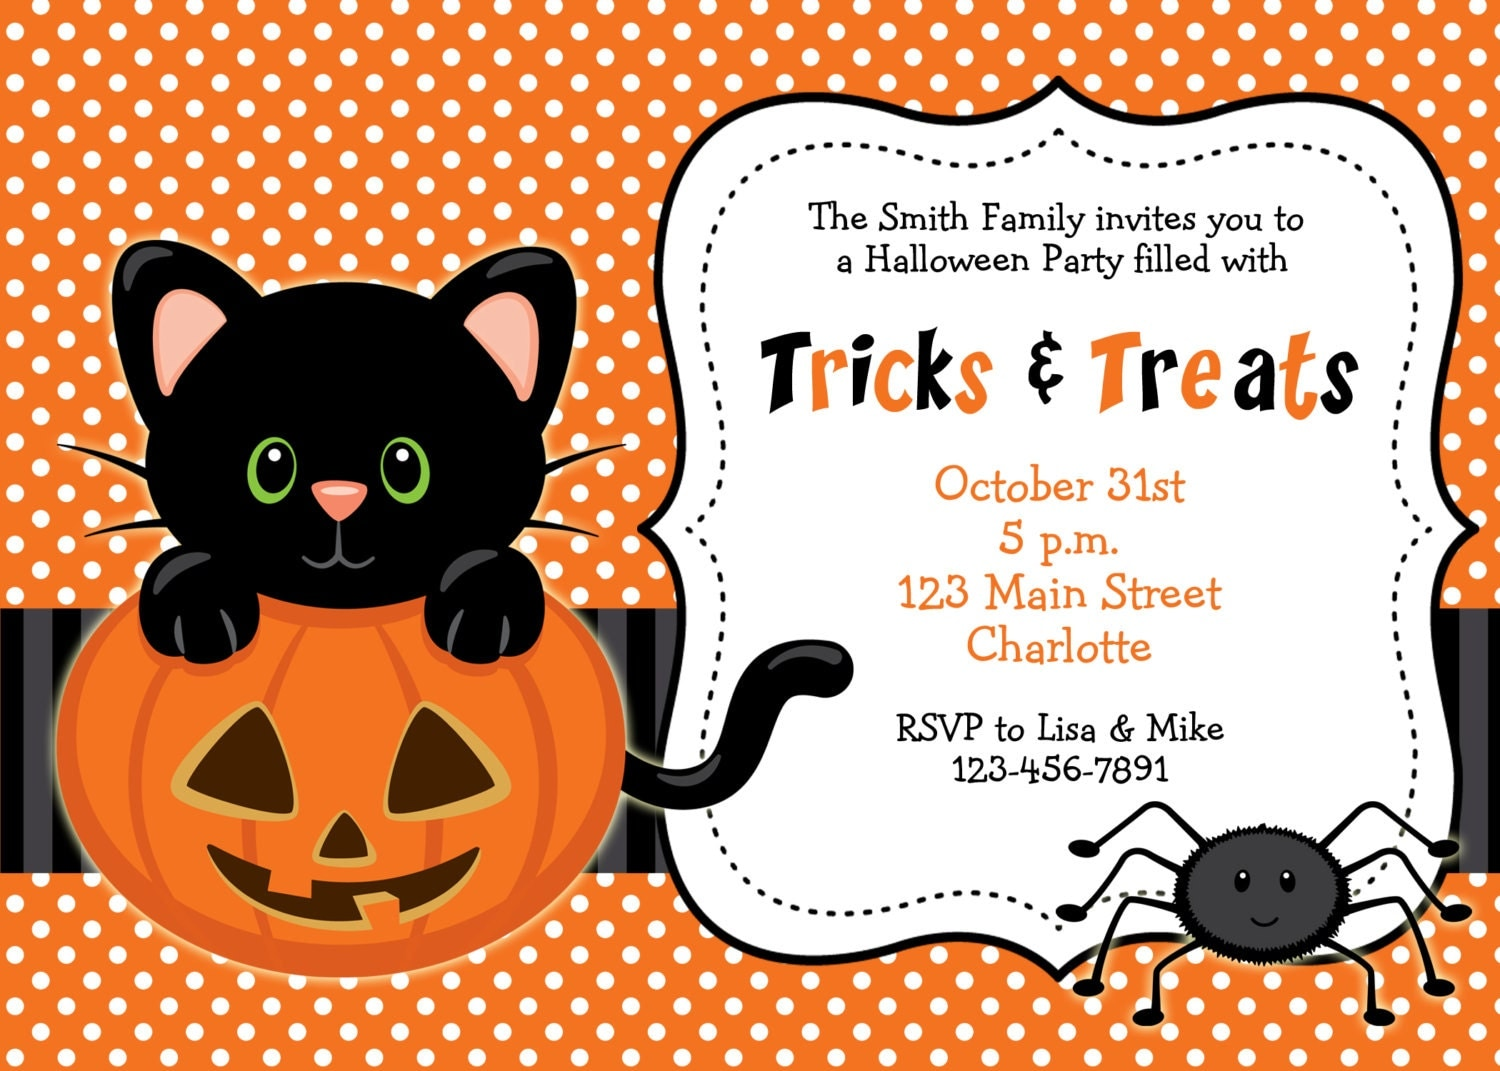 Halloween Party Invitation Kitty Cat Halloween Birthday - Halloween birthday invitations party